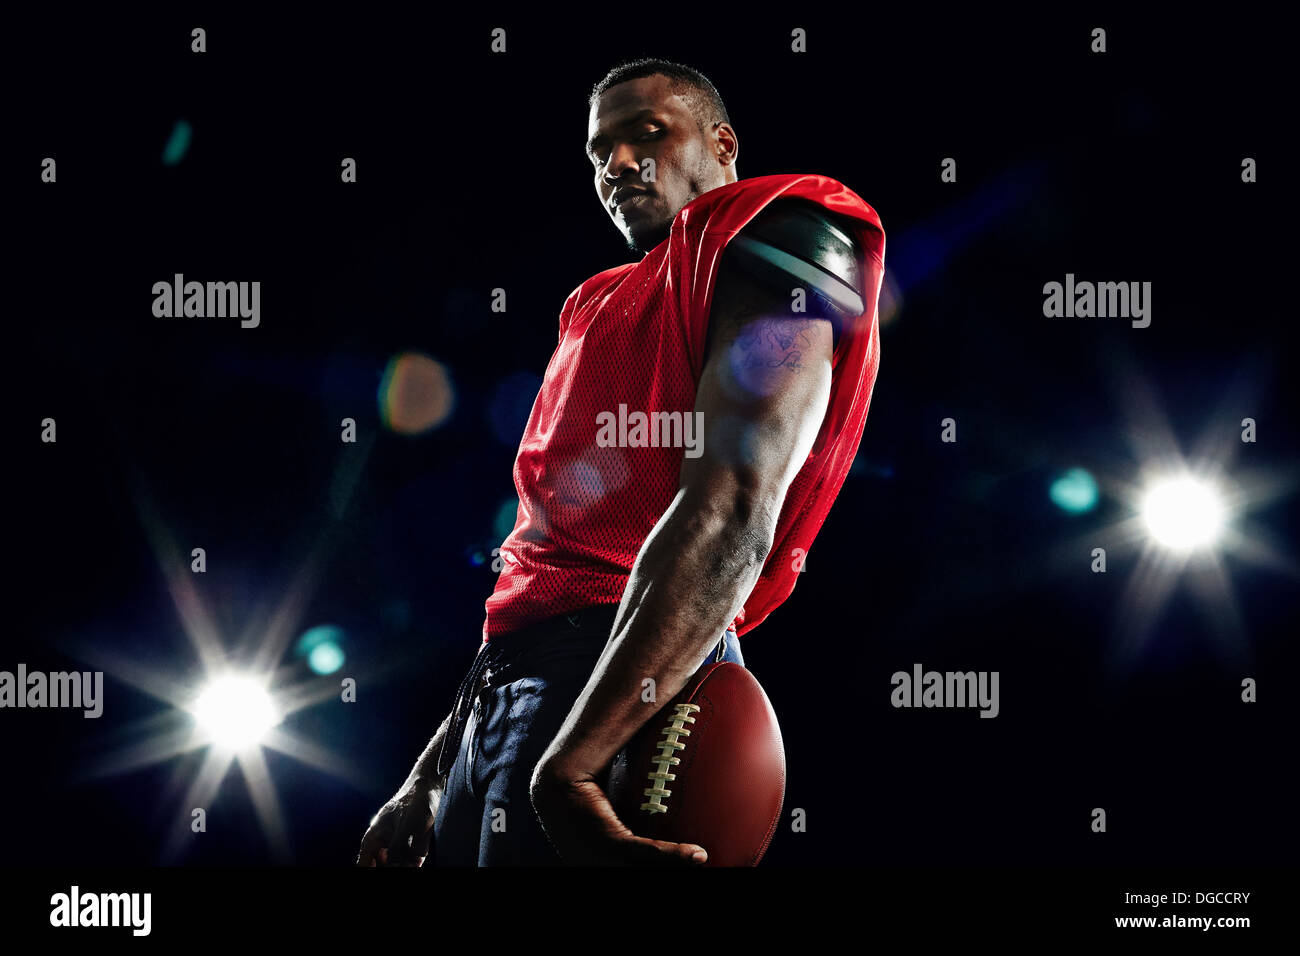 Portrait of american football player - Stock Image